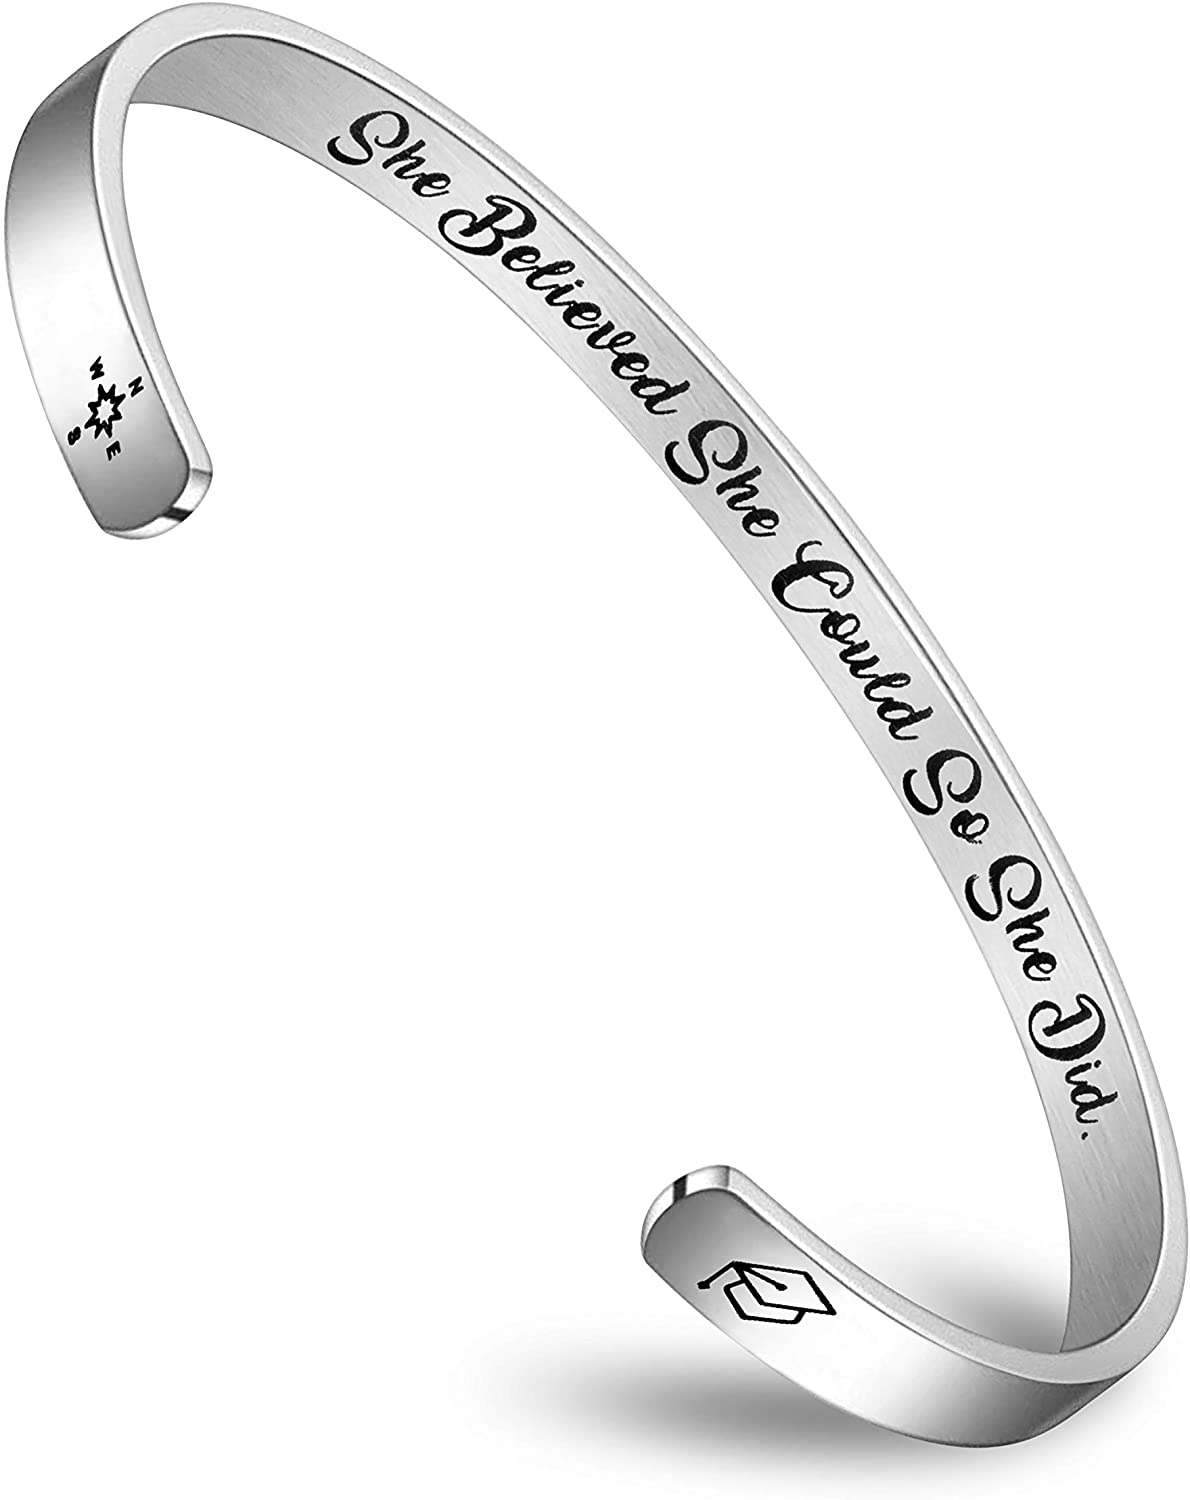 Encouragement Gifts Bracelet Cuff Bangle Women Mantra Quote Stainless Steel Silver